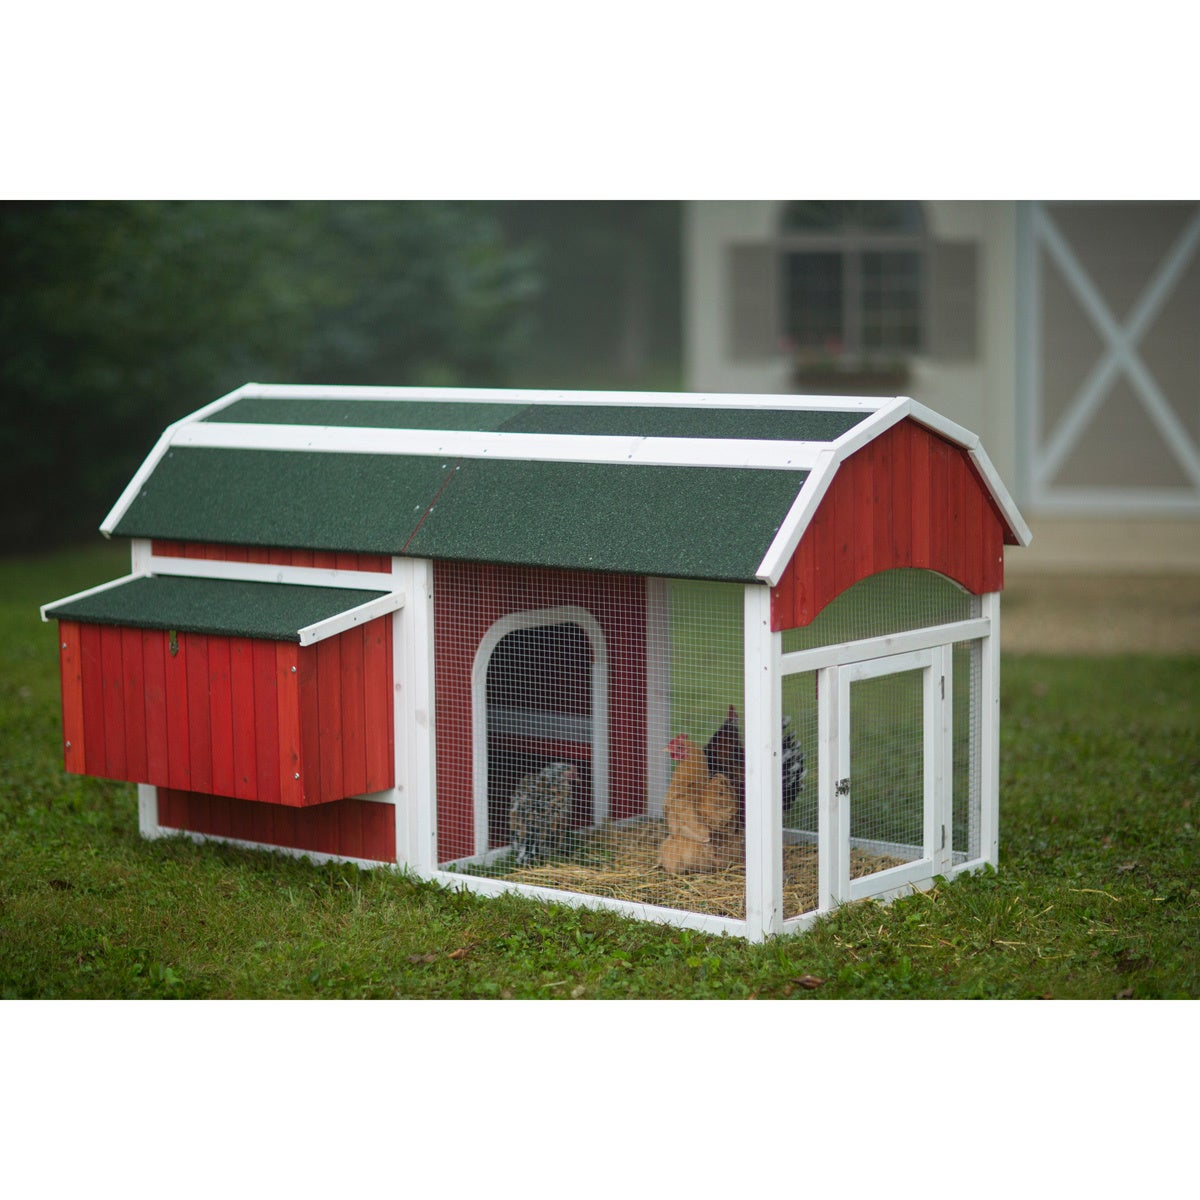 Prevue Pet Products Red Barn Chicken Coop 465 (Red)